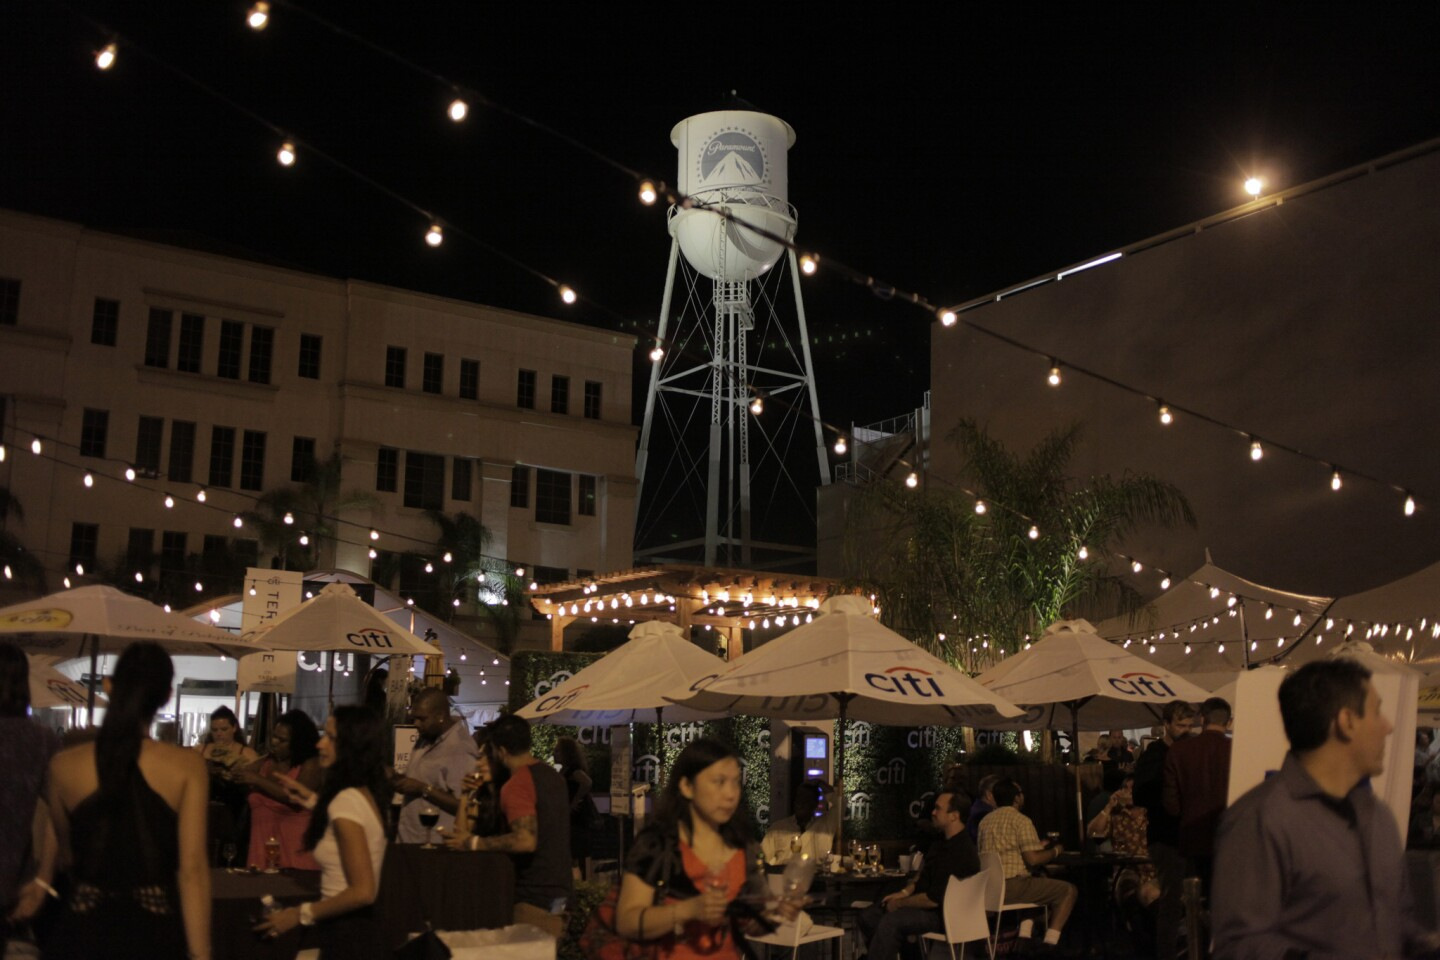 The Paramount water tower overlooks the outdoor lounge area, where guests sample food dishes and drinks.